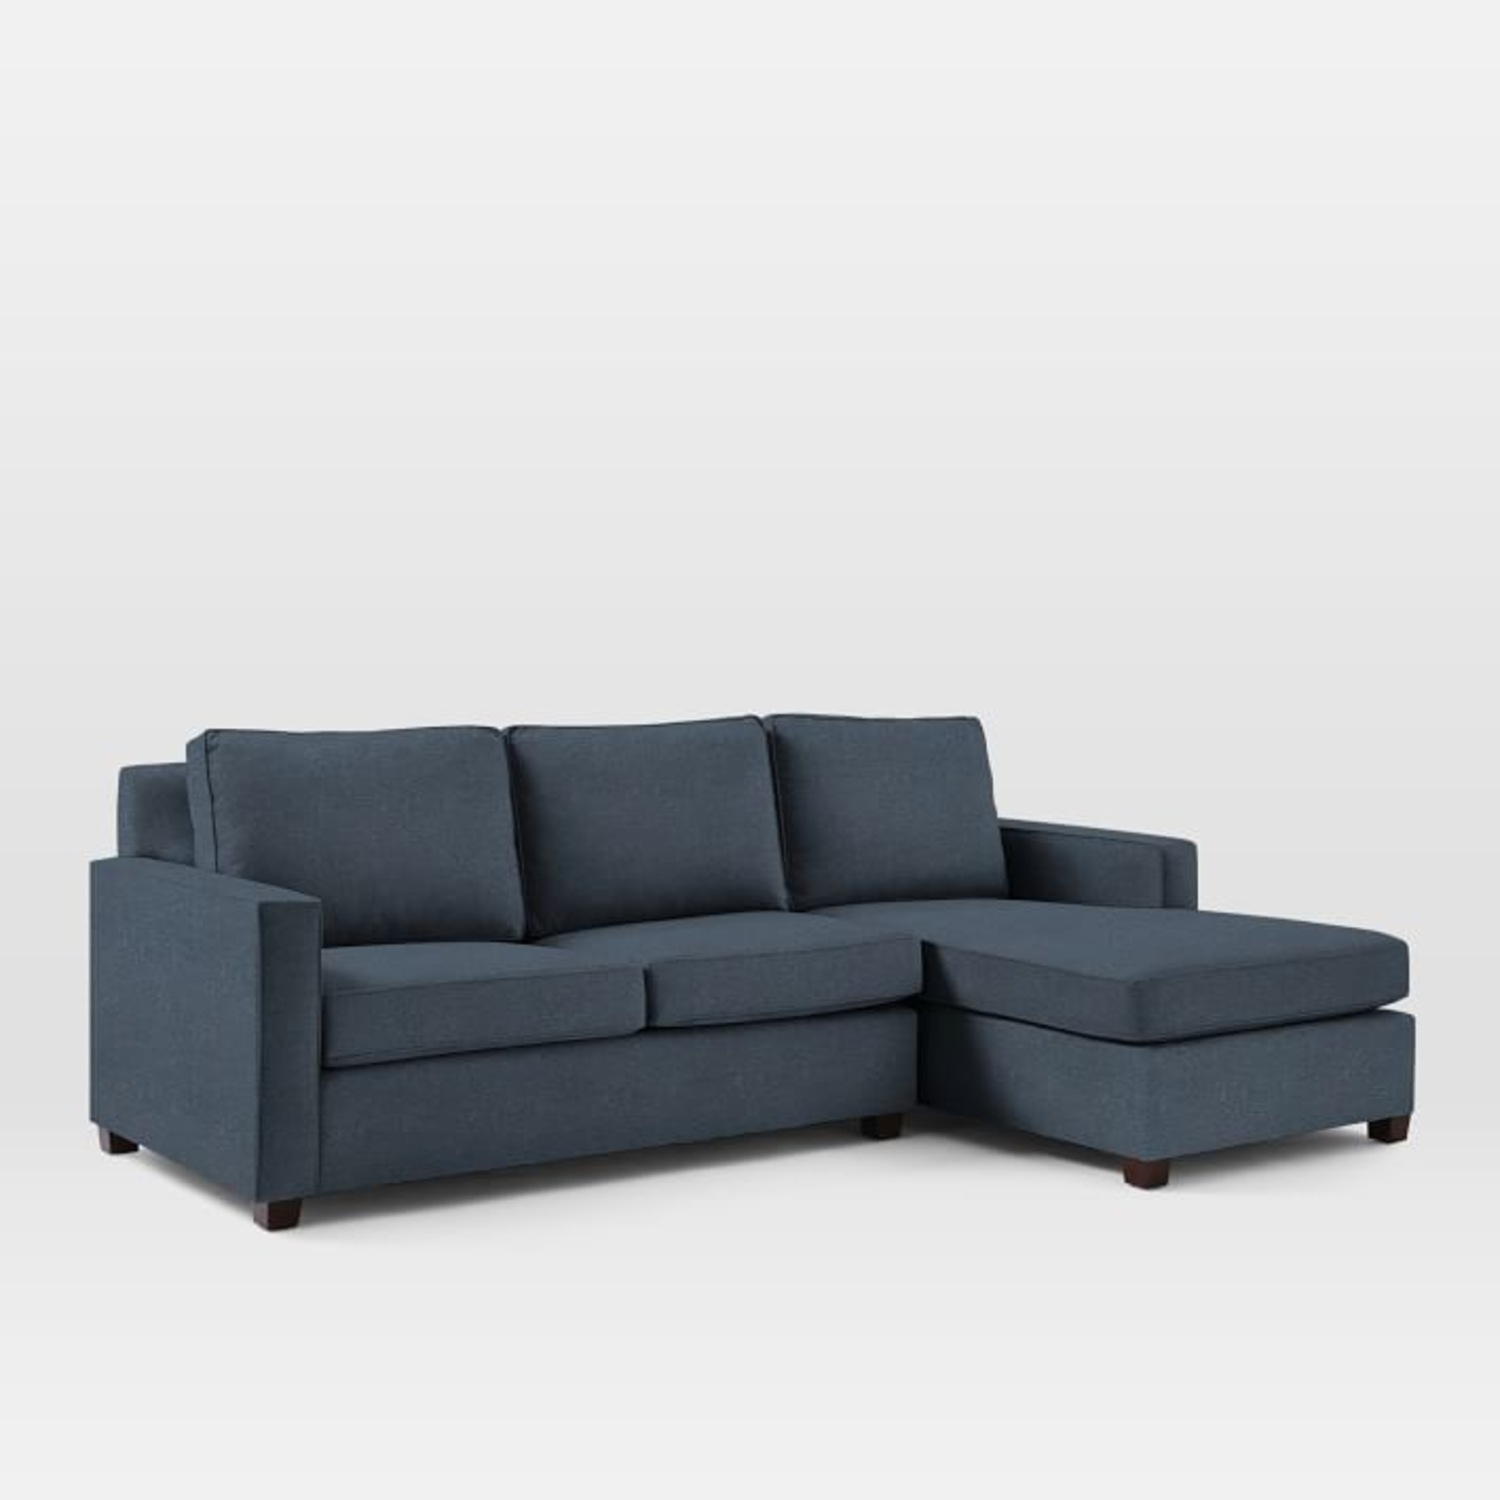 West Elm Henry L-Shaped Sofa in Blue Twill - image-1